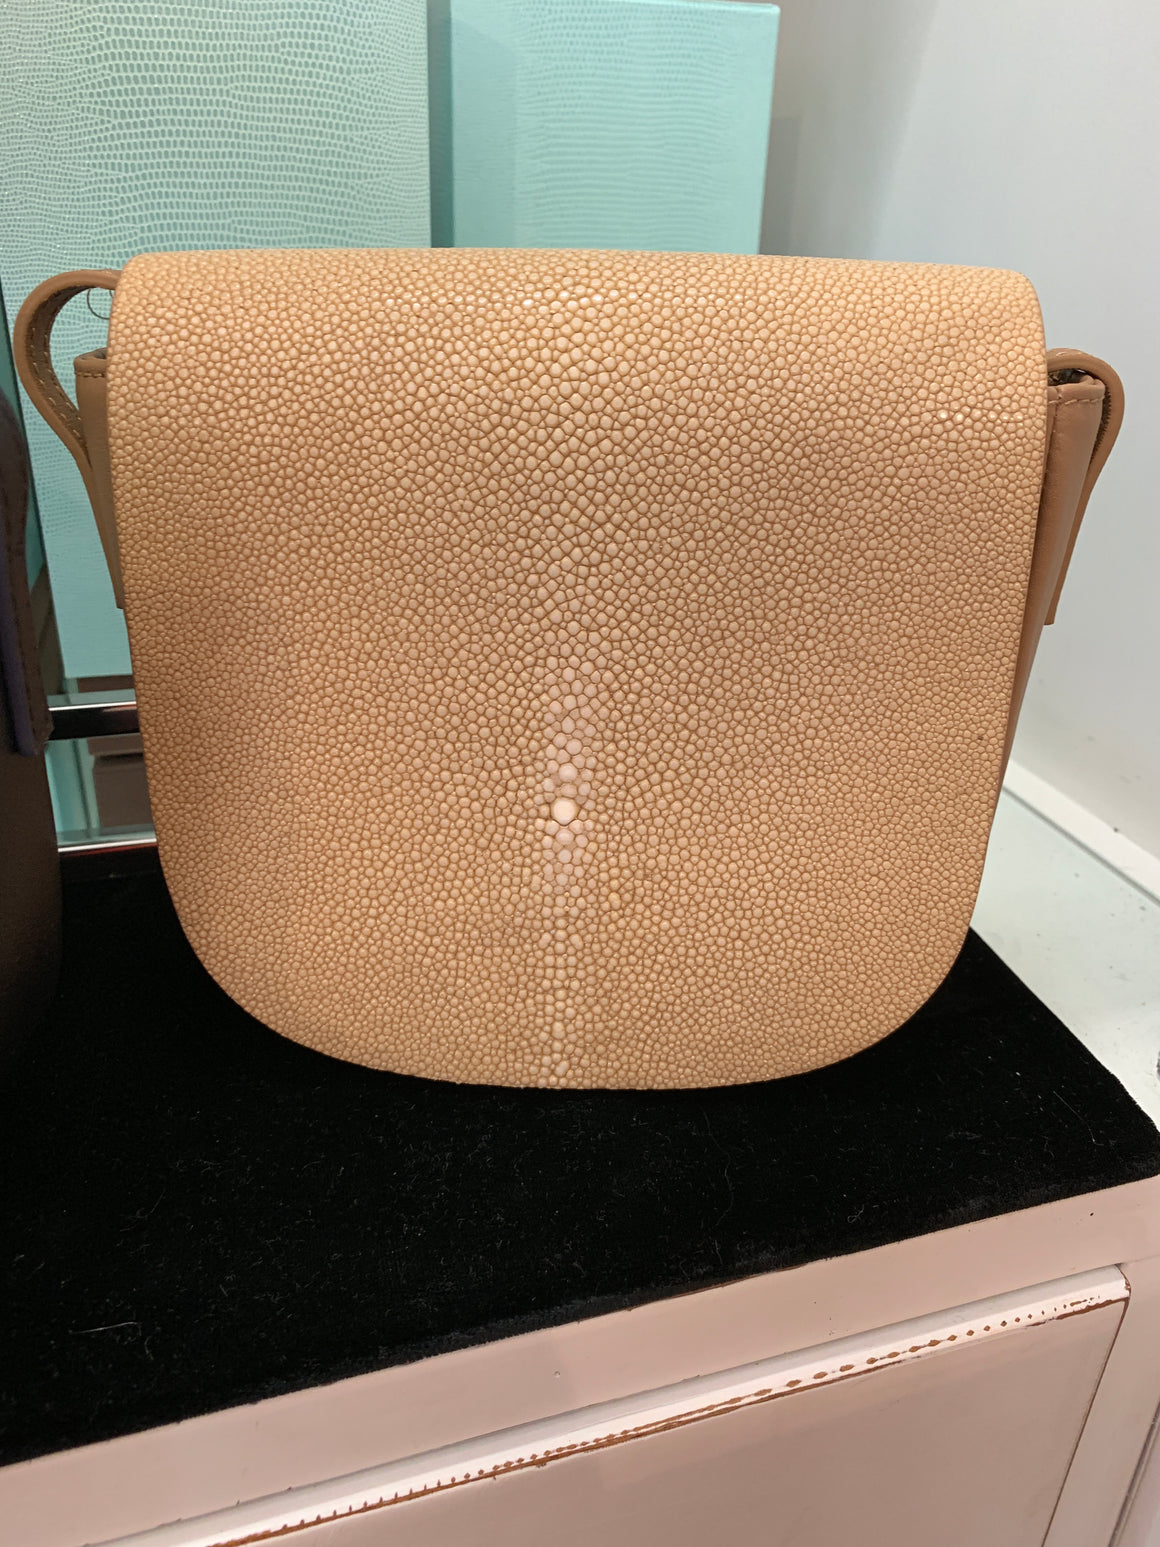 BROOKE CROSS BODY WITH TASSEL TAN LEATHER PUTTY SHAGREEN